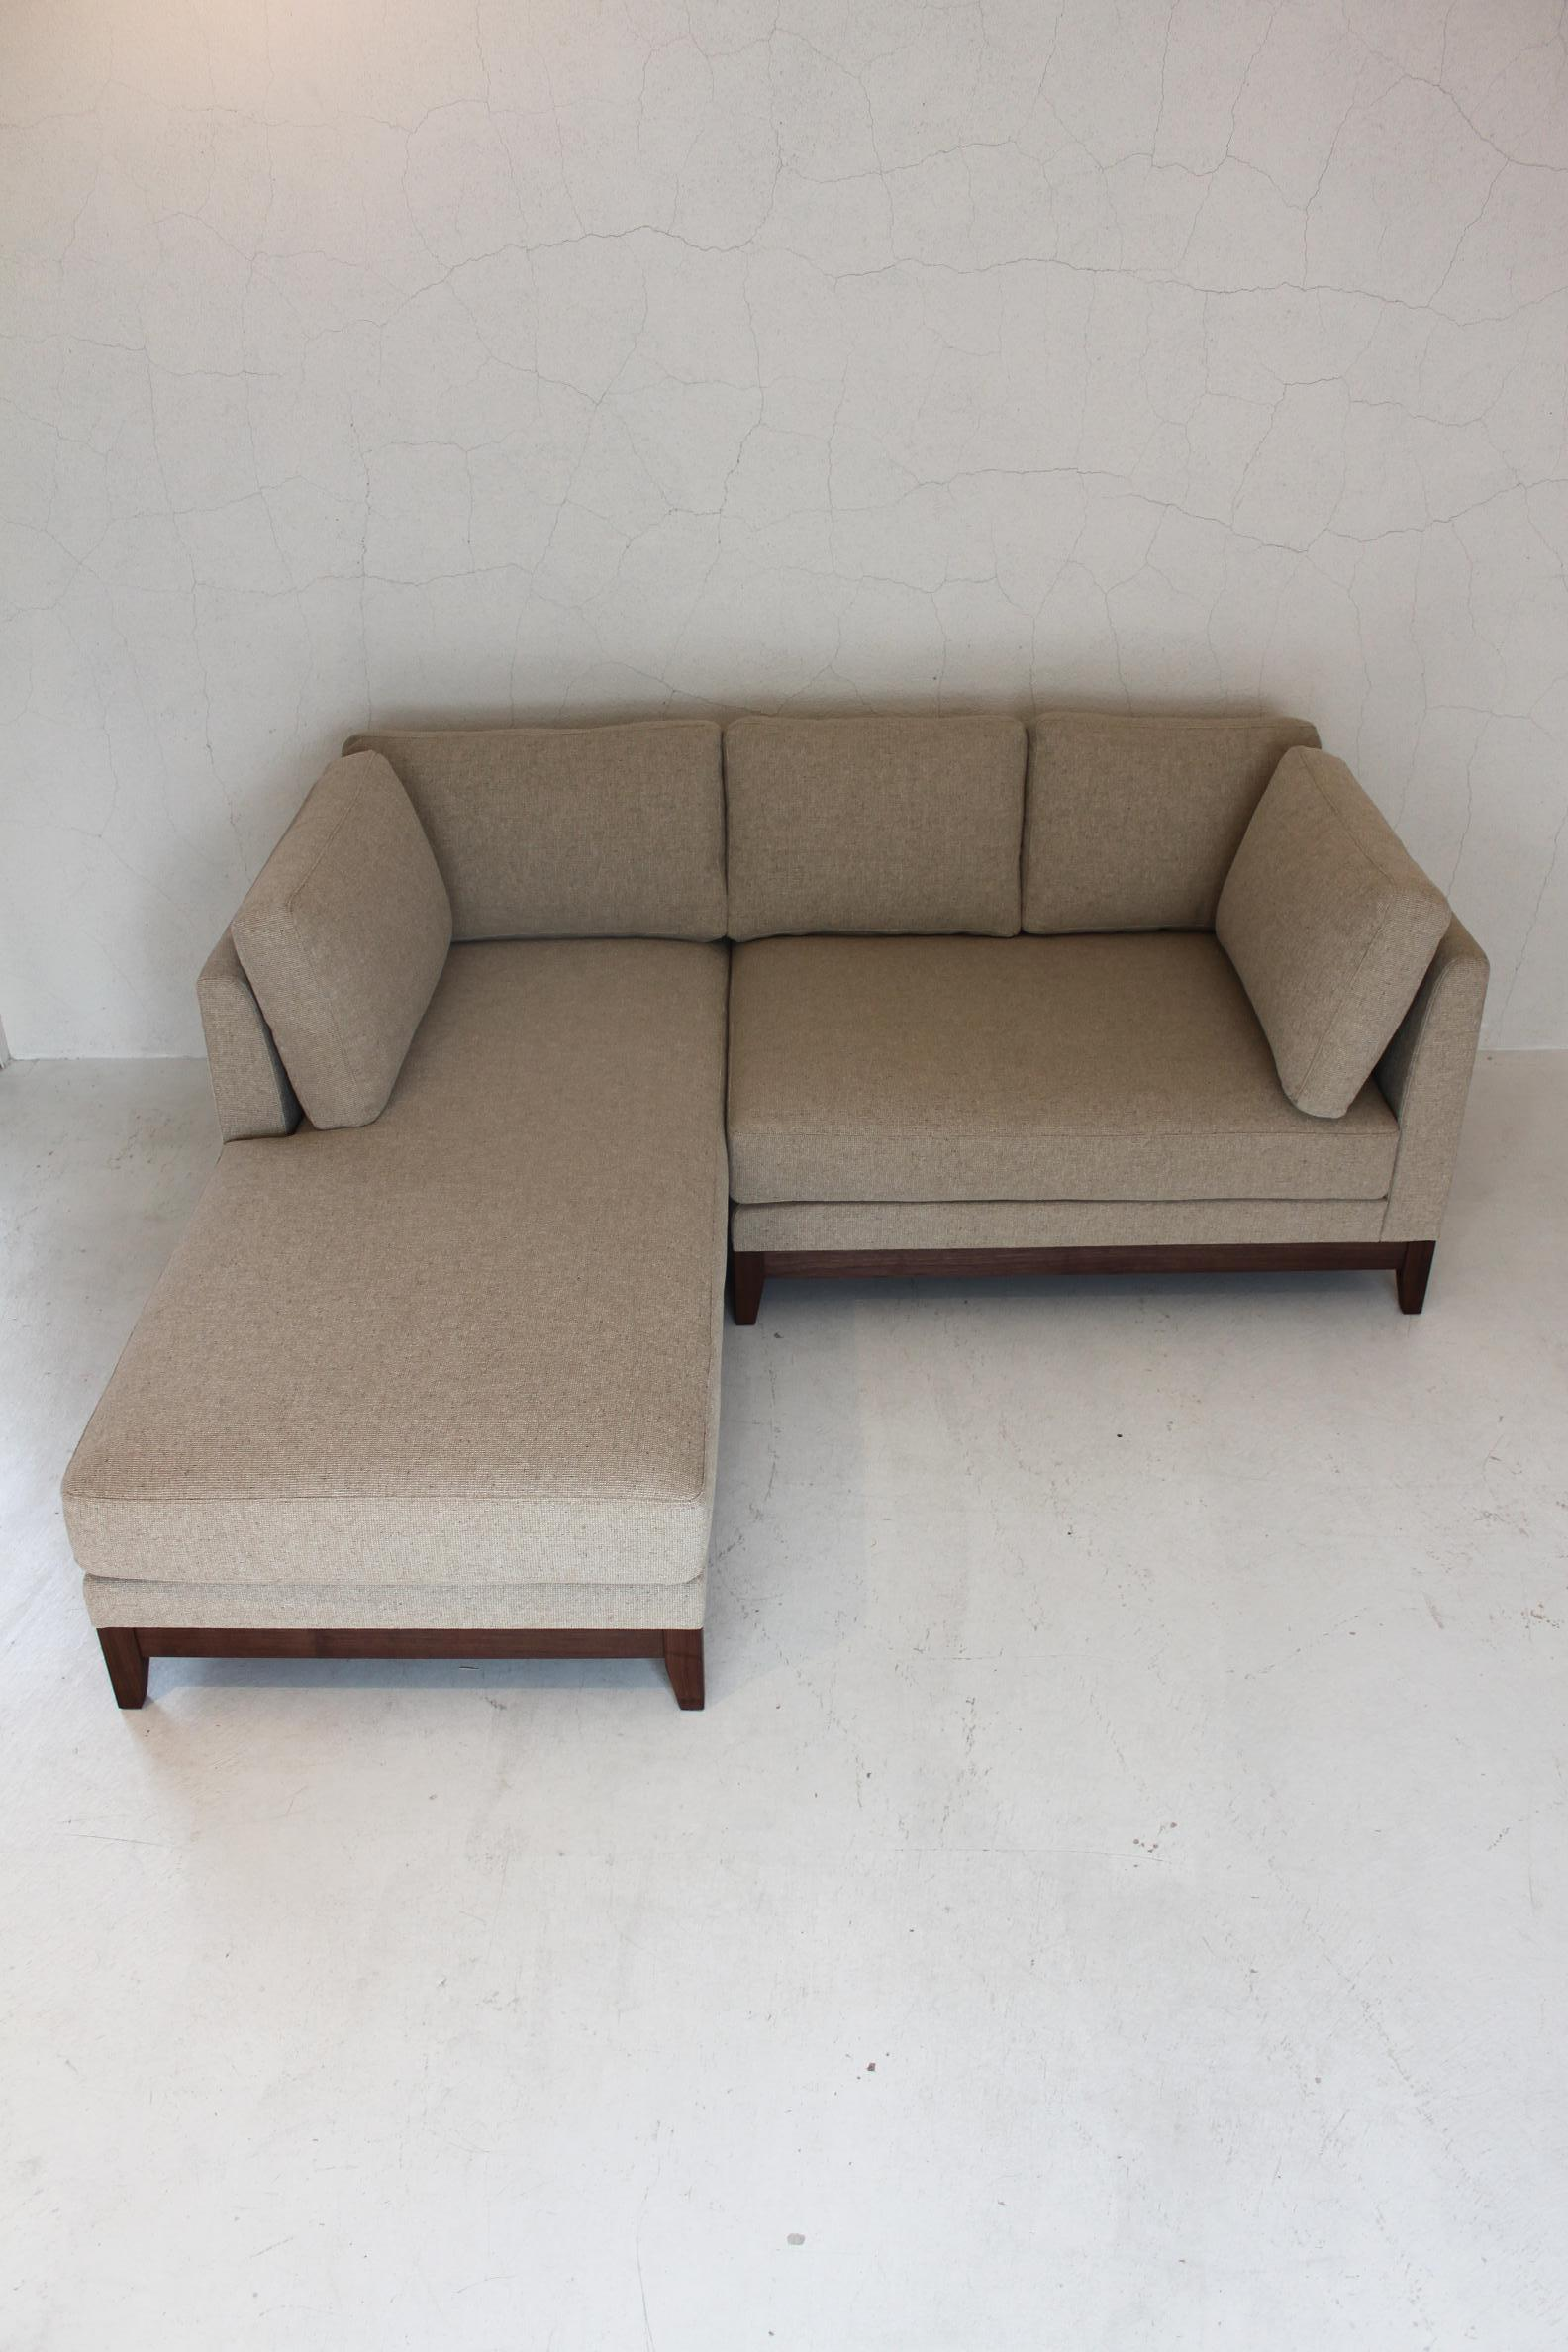 IW COUCH SOFA_c0146581_174563.jpg